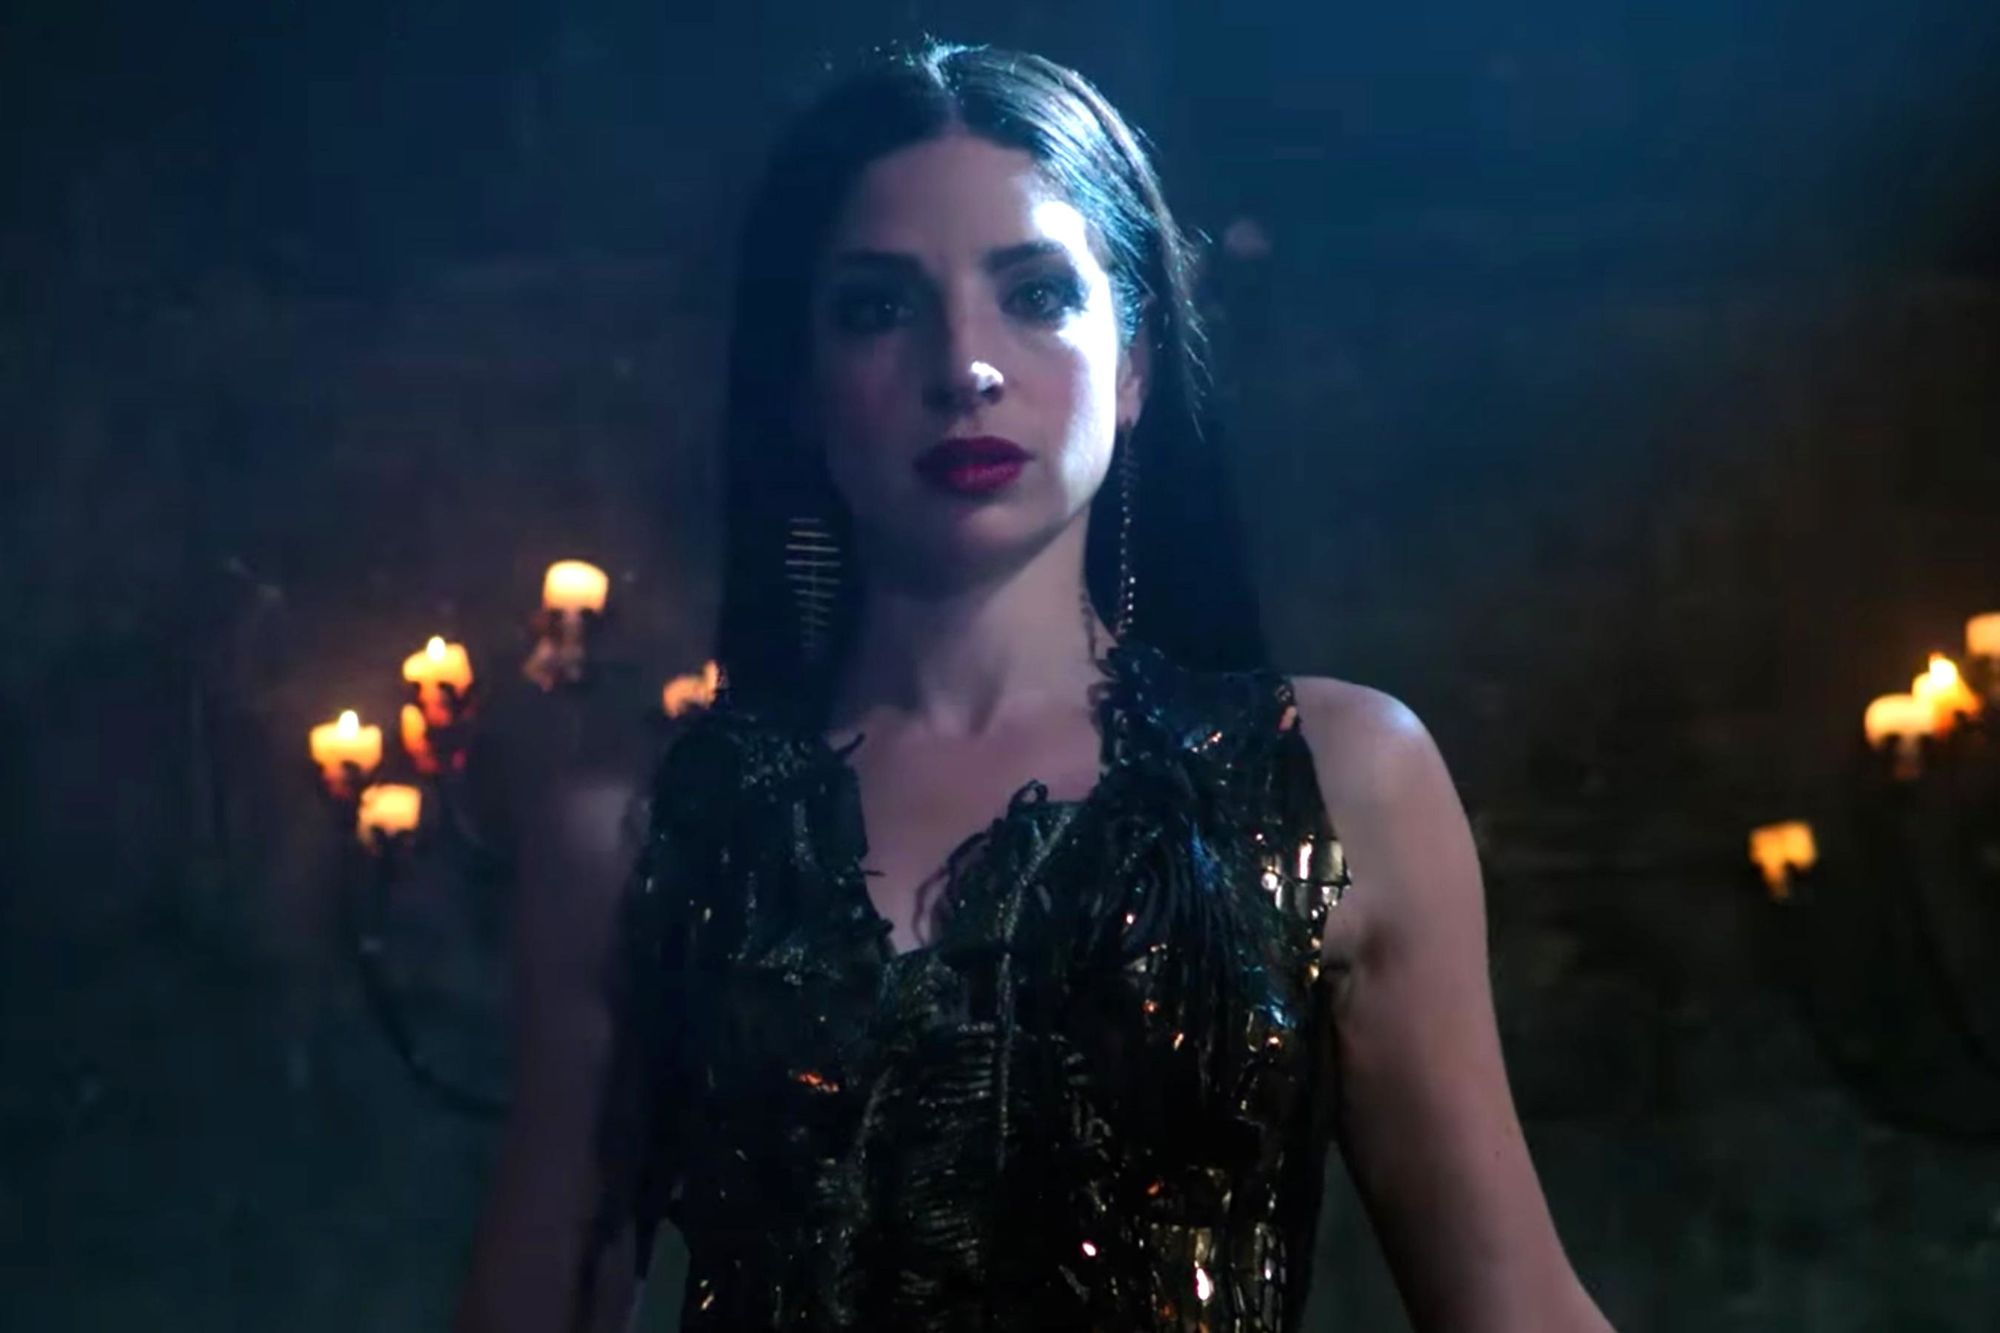 Shadowhunters: Trailer da 3ª temporada introduzir nova vilã